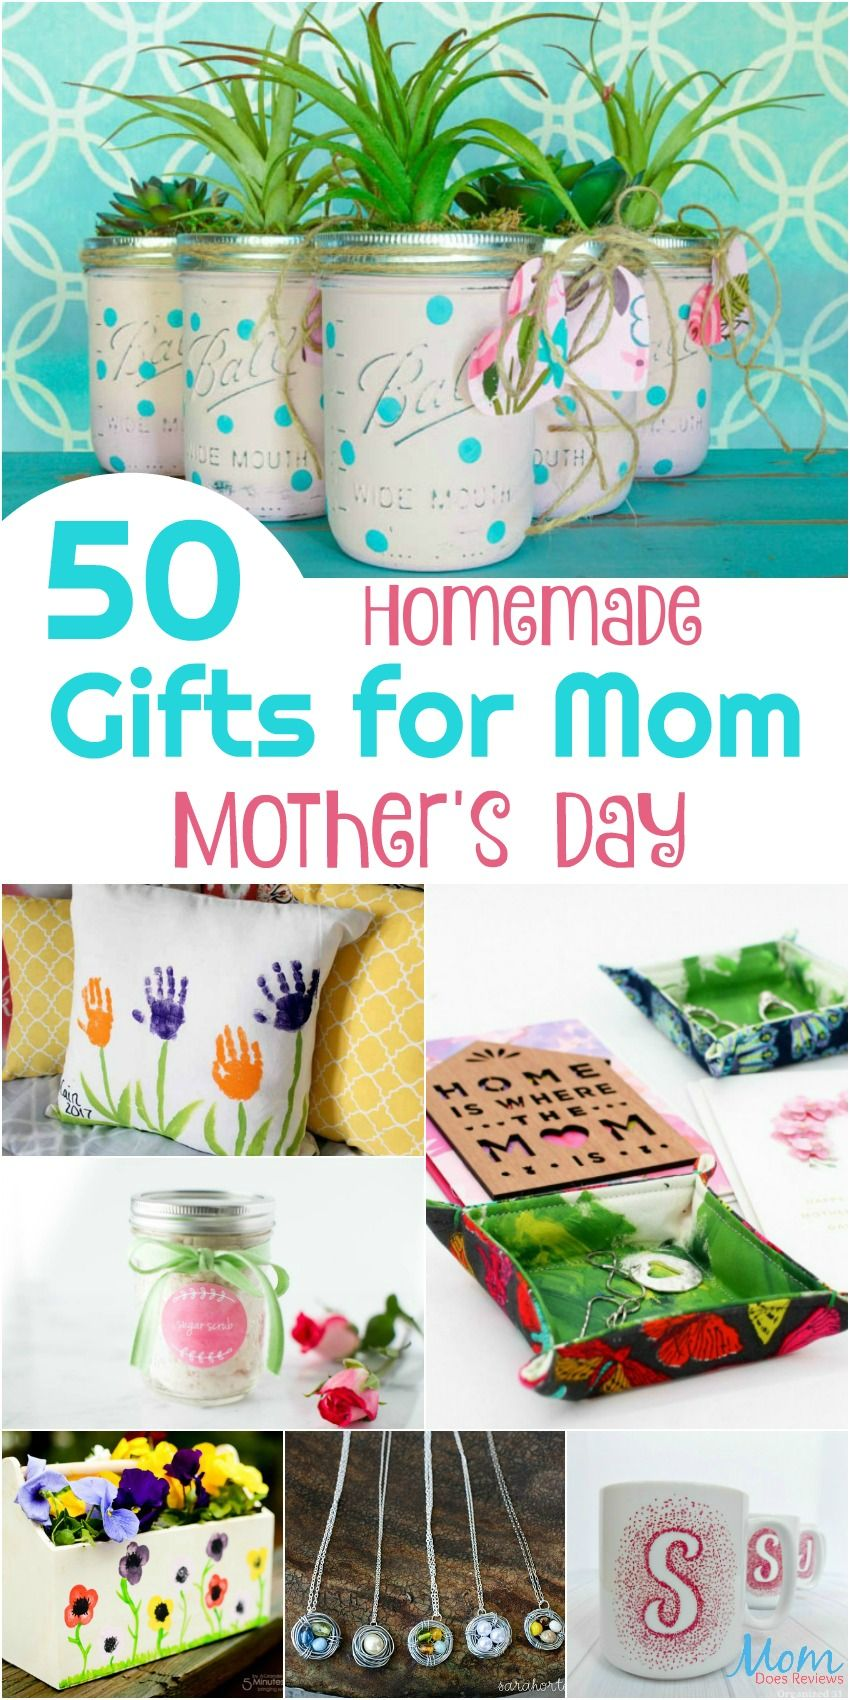 50 homemade gifts for mom on mothers day homemade